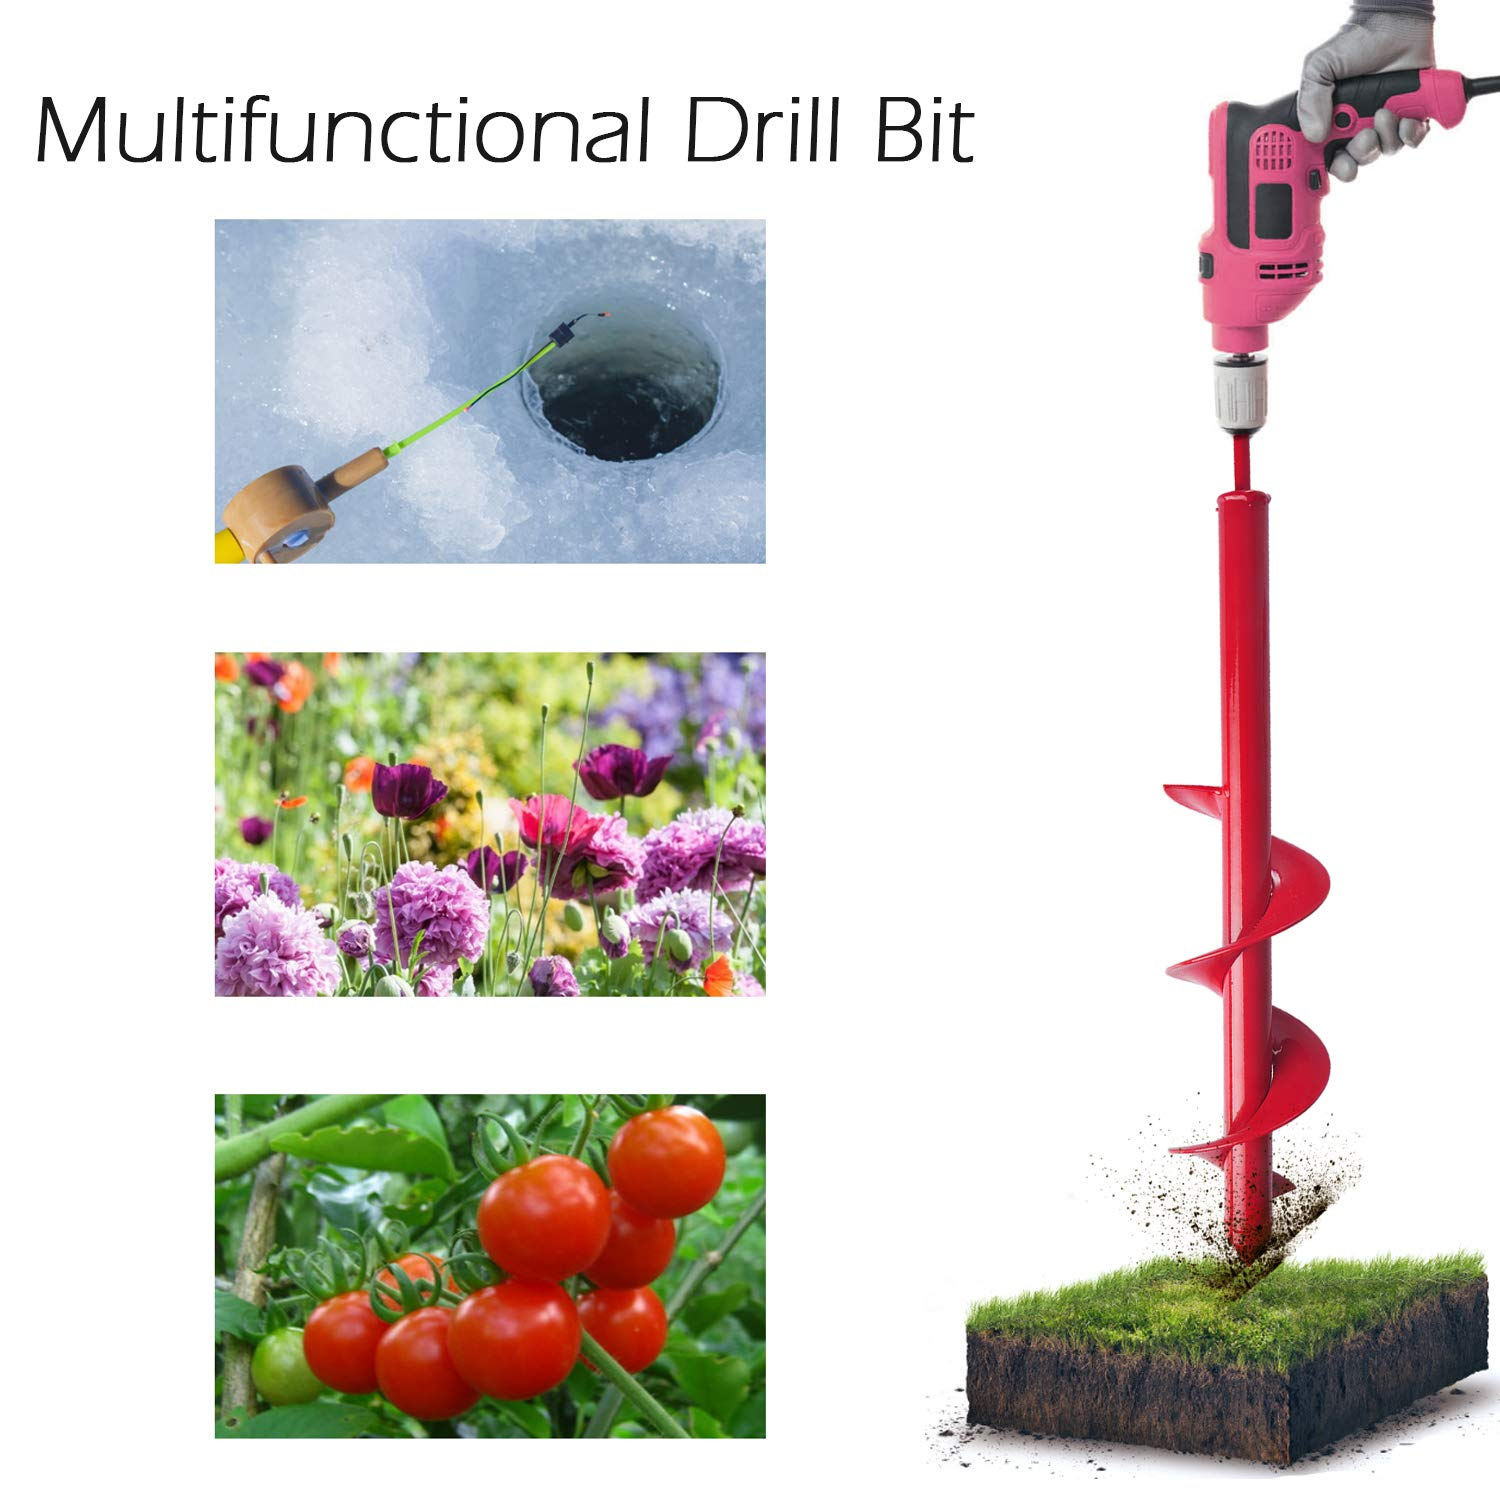 Bulb /& Bed Planting Auger Digger 3.5 x 17 inch for 3//8 Hex Drive Drill Treeland Garden Auger Drill Bit for Planting Garden Genie Gloves with 8 Claws for Digging Spiral Hole Drill Planter